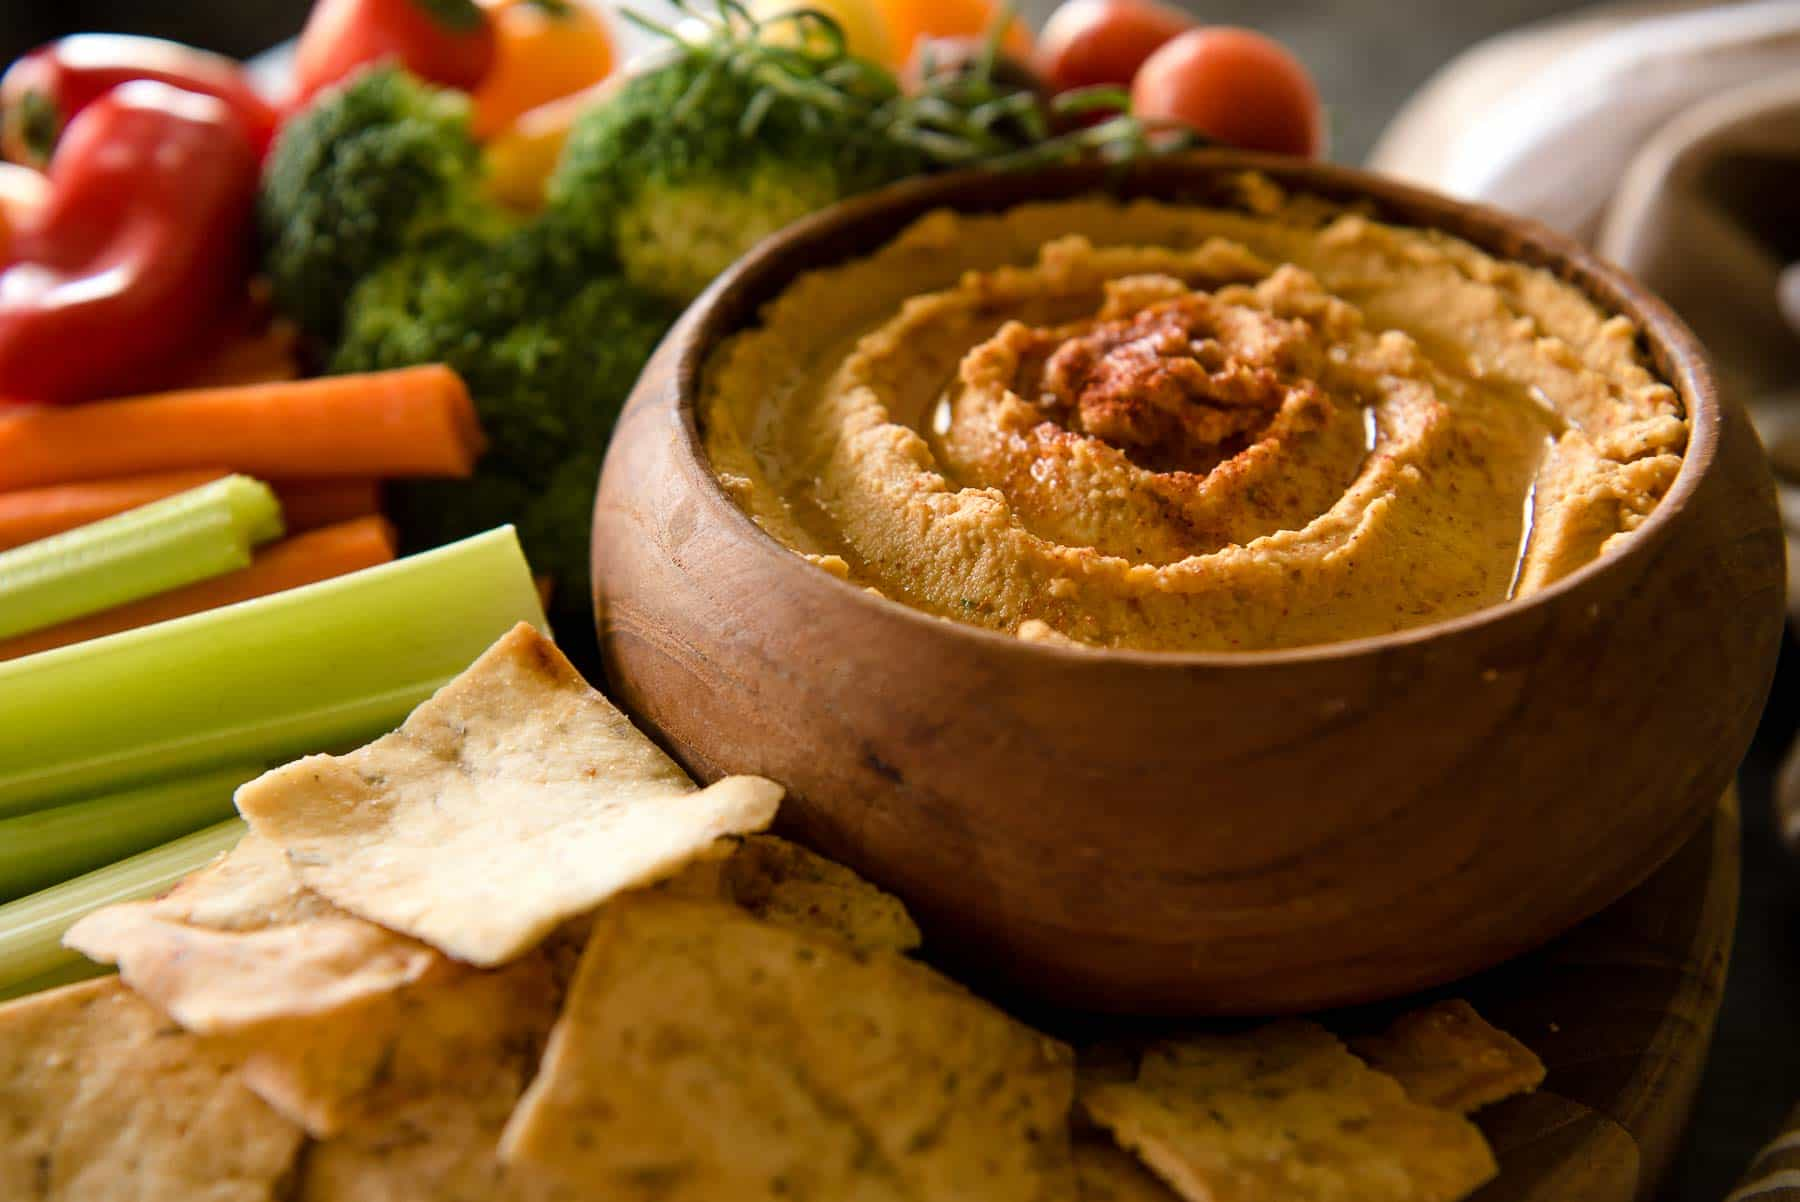 Everything you love about your favorite hummus with a little bit of fall added in - this savory Roasted Garlic Pumpkin Hummus takes just 5 minutes to make, and will please every palate!